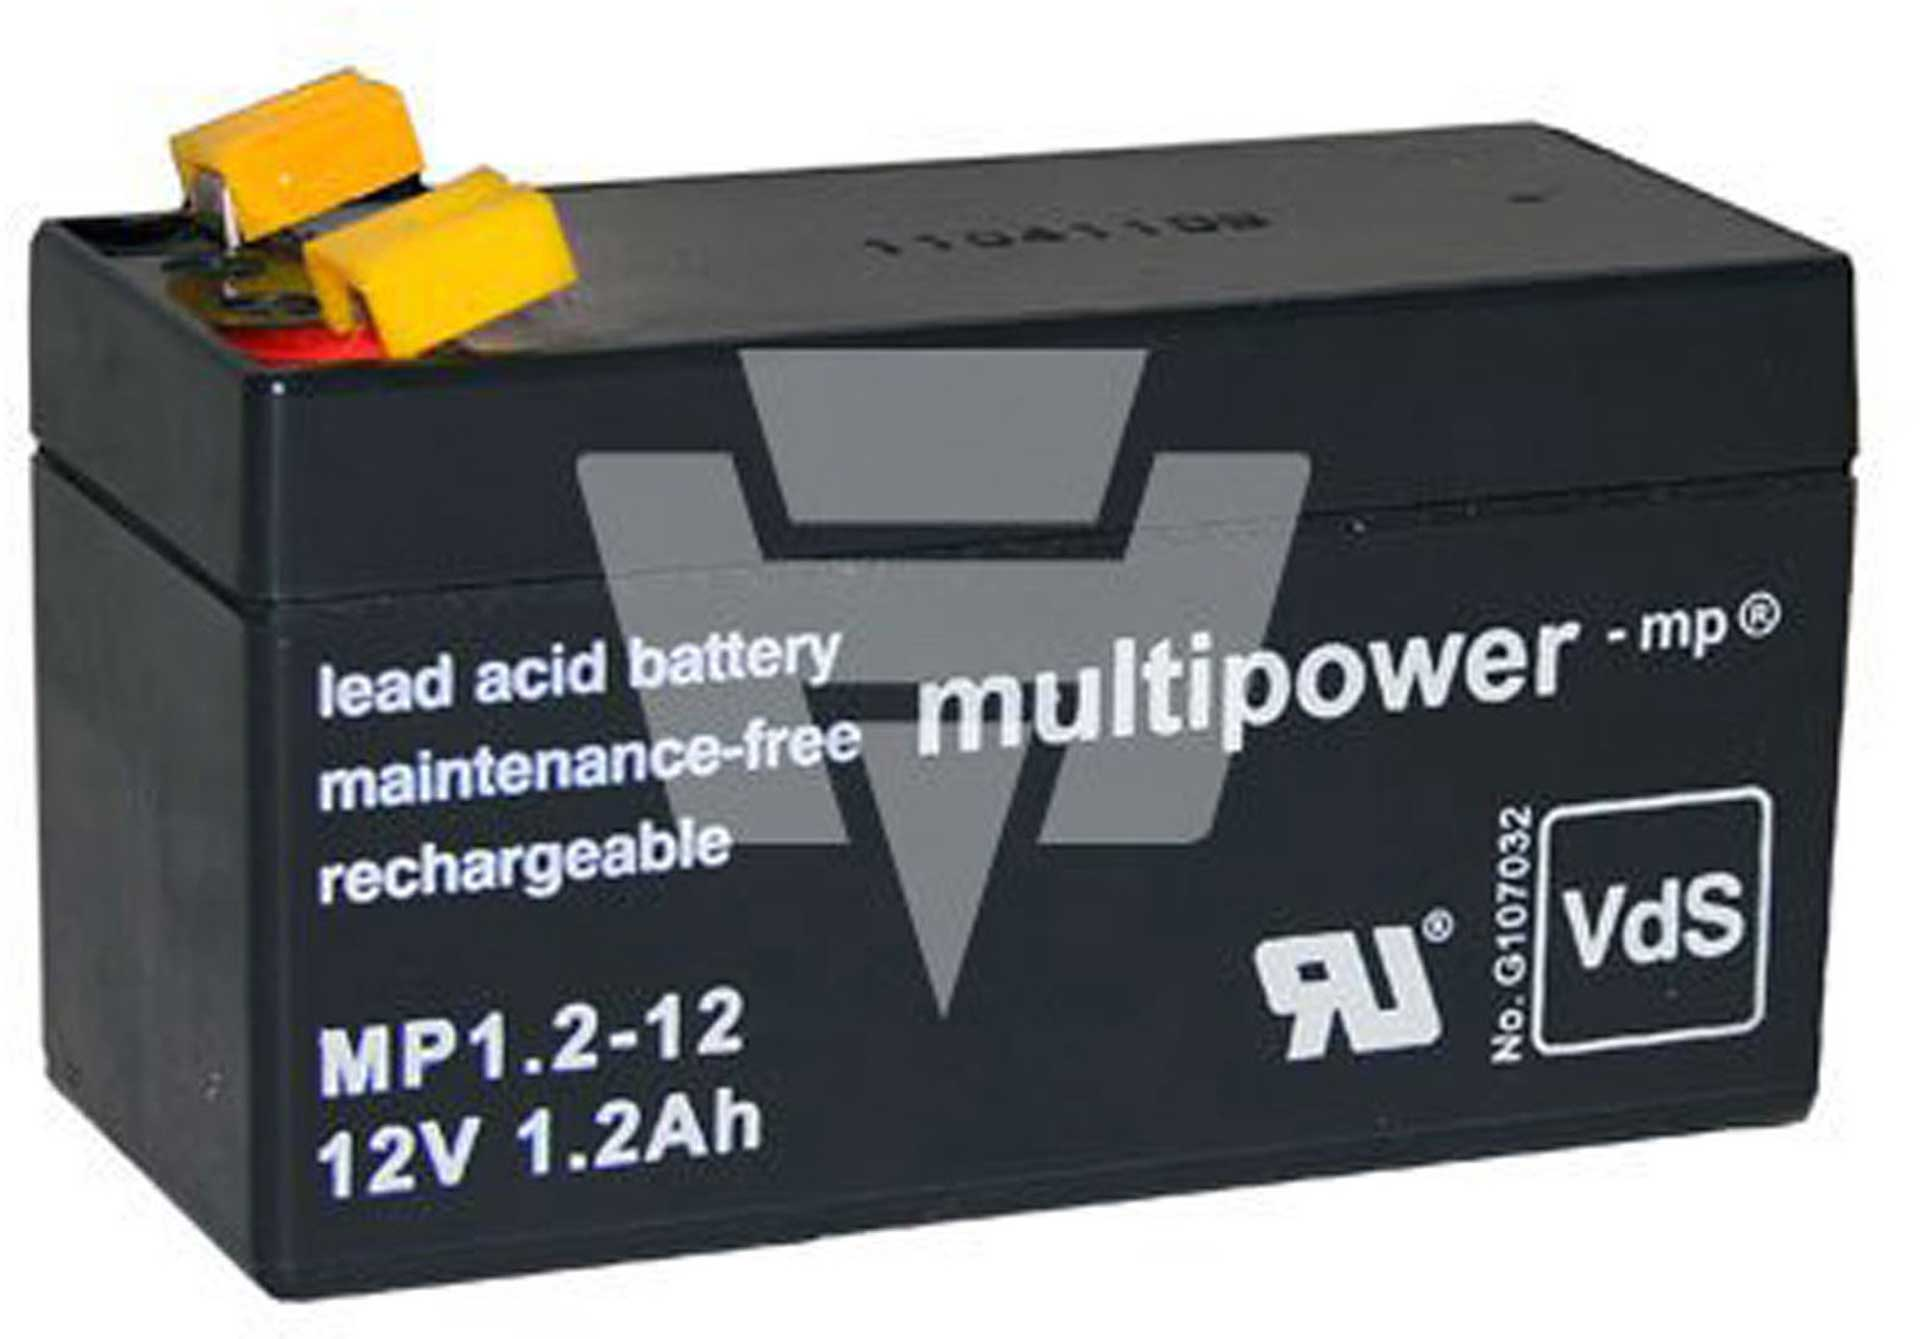 MULTIPOWER LEAD BATTERY 12V 1,2AH